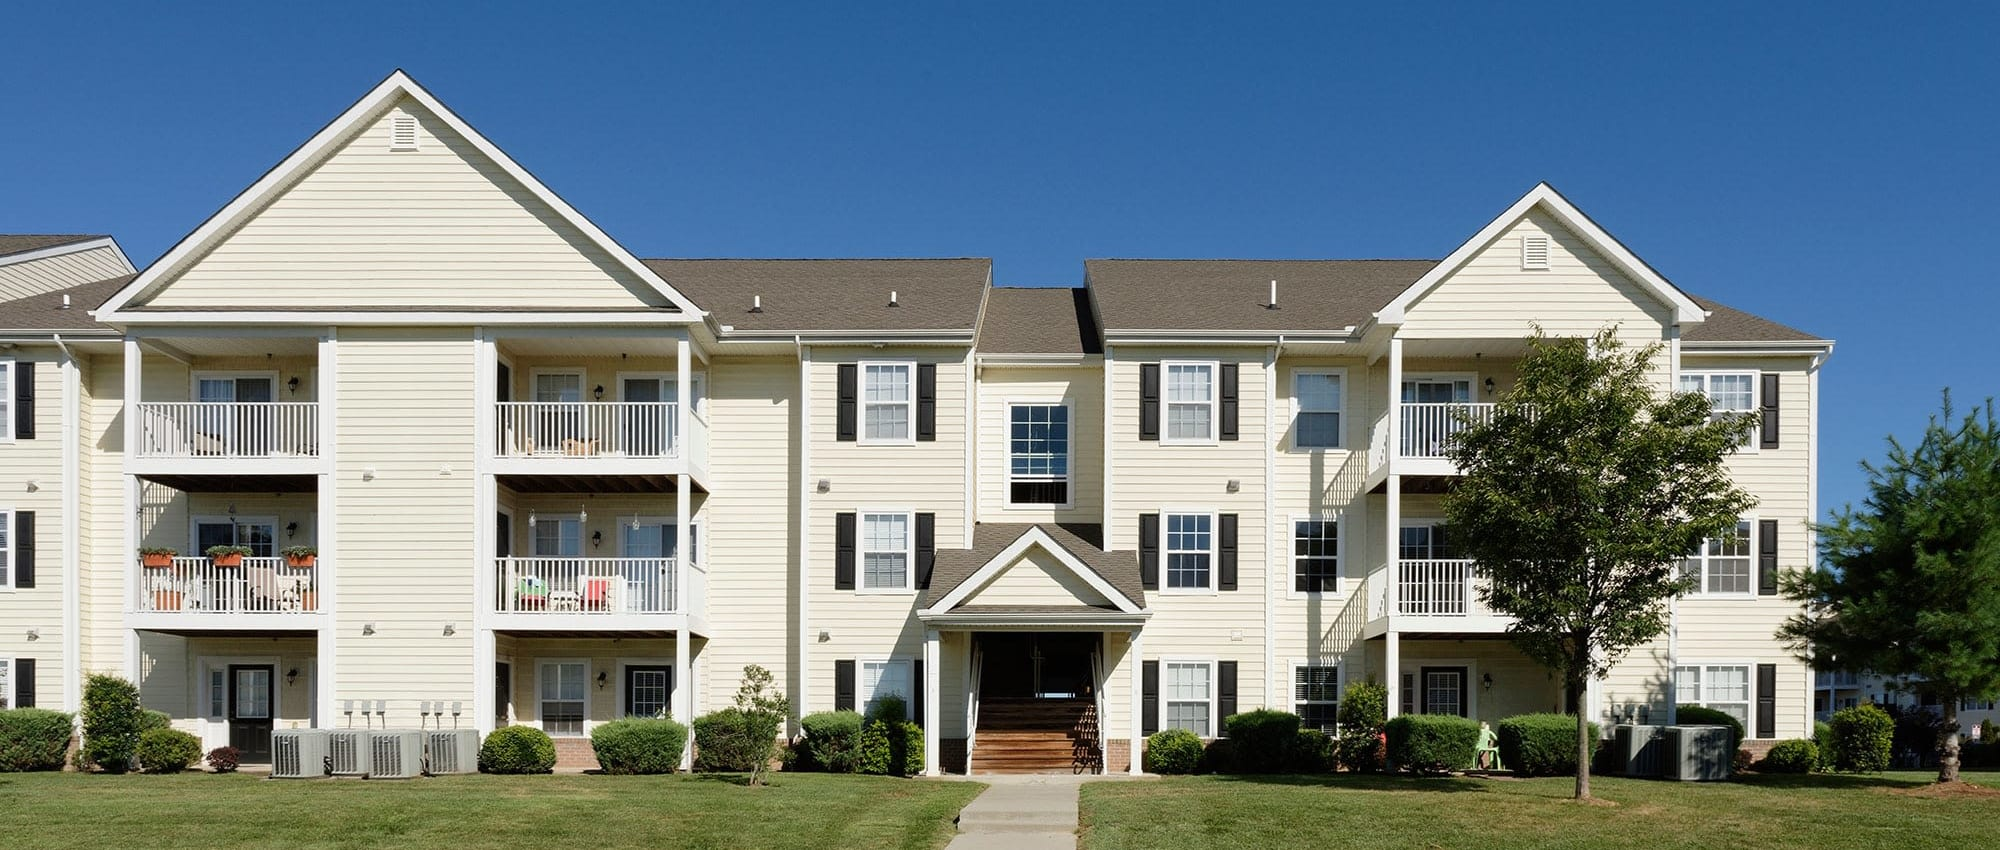 Apartments at Cannon Mills in Dover, Delaware